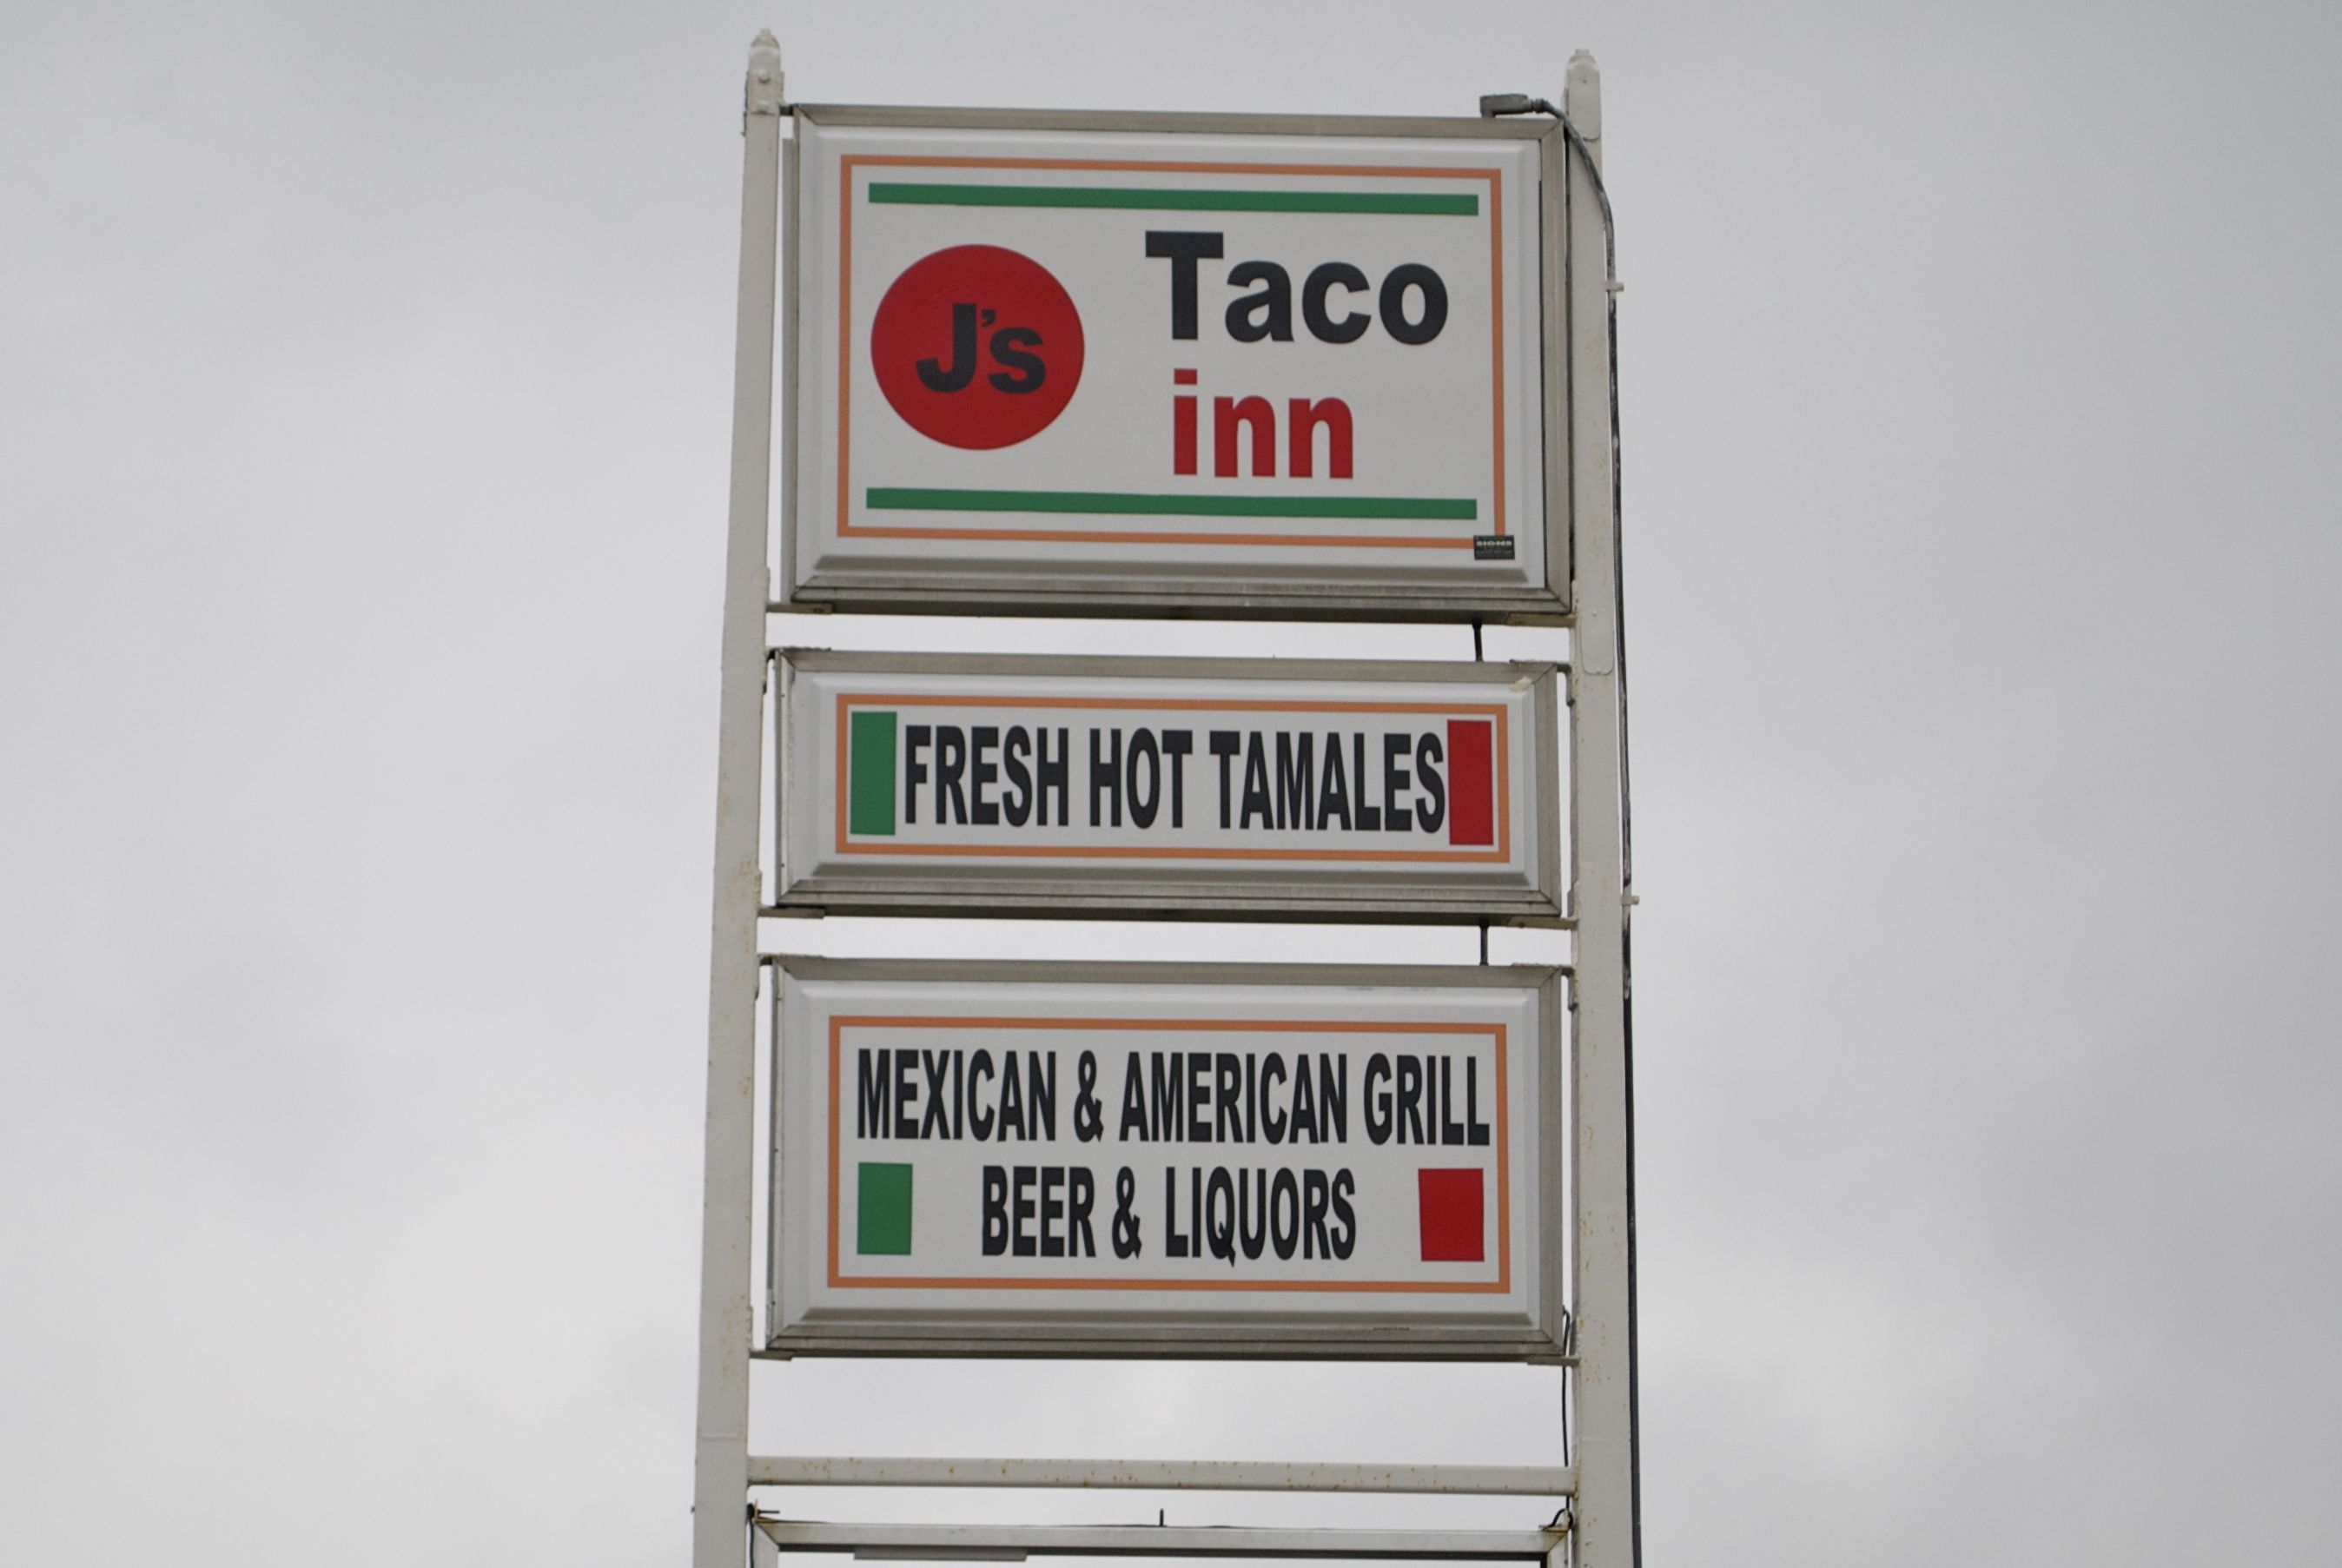 Indiana hendricks county lizton - J S Taco Inn Is Located On Highway 39 In Lizton Indiana Just South Of I 74 And Highway 136